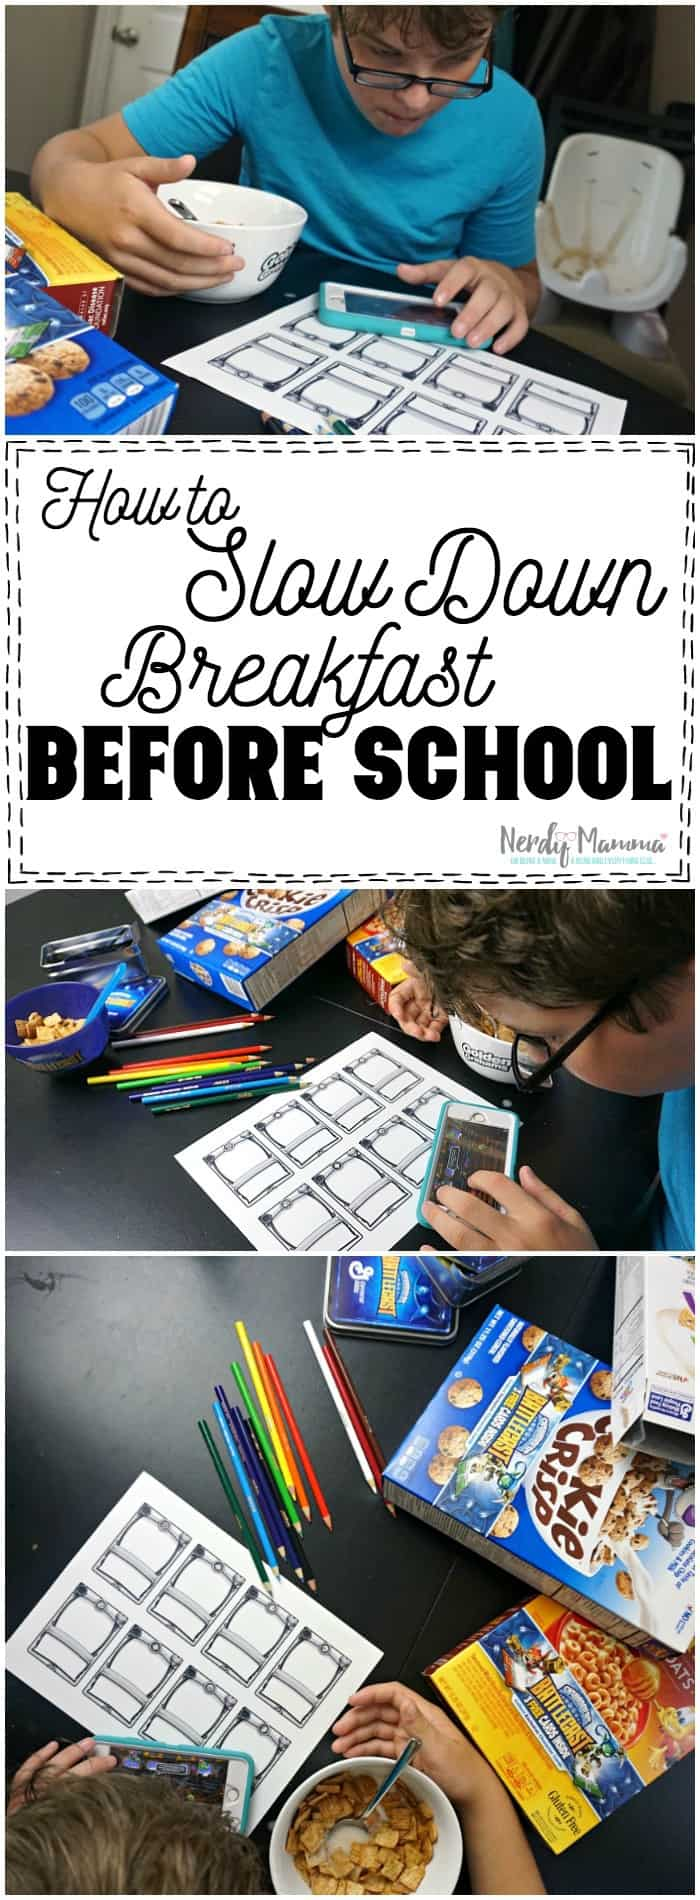 This mom's ideas on how to (and why you should) slow down breakfast for your kids before school Brilliant.